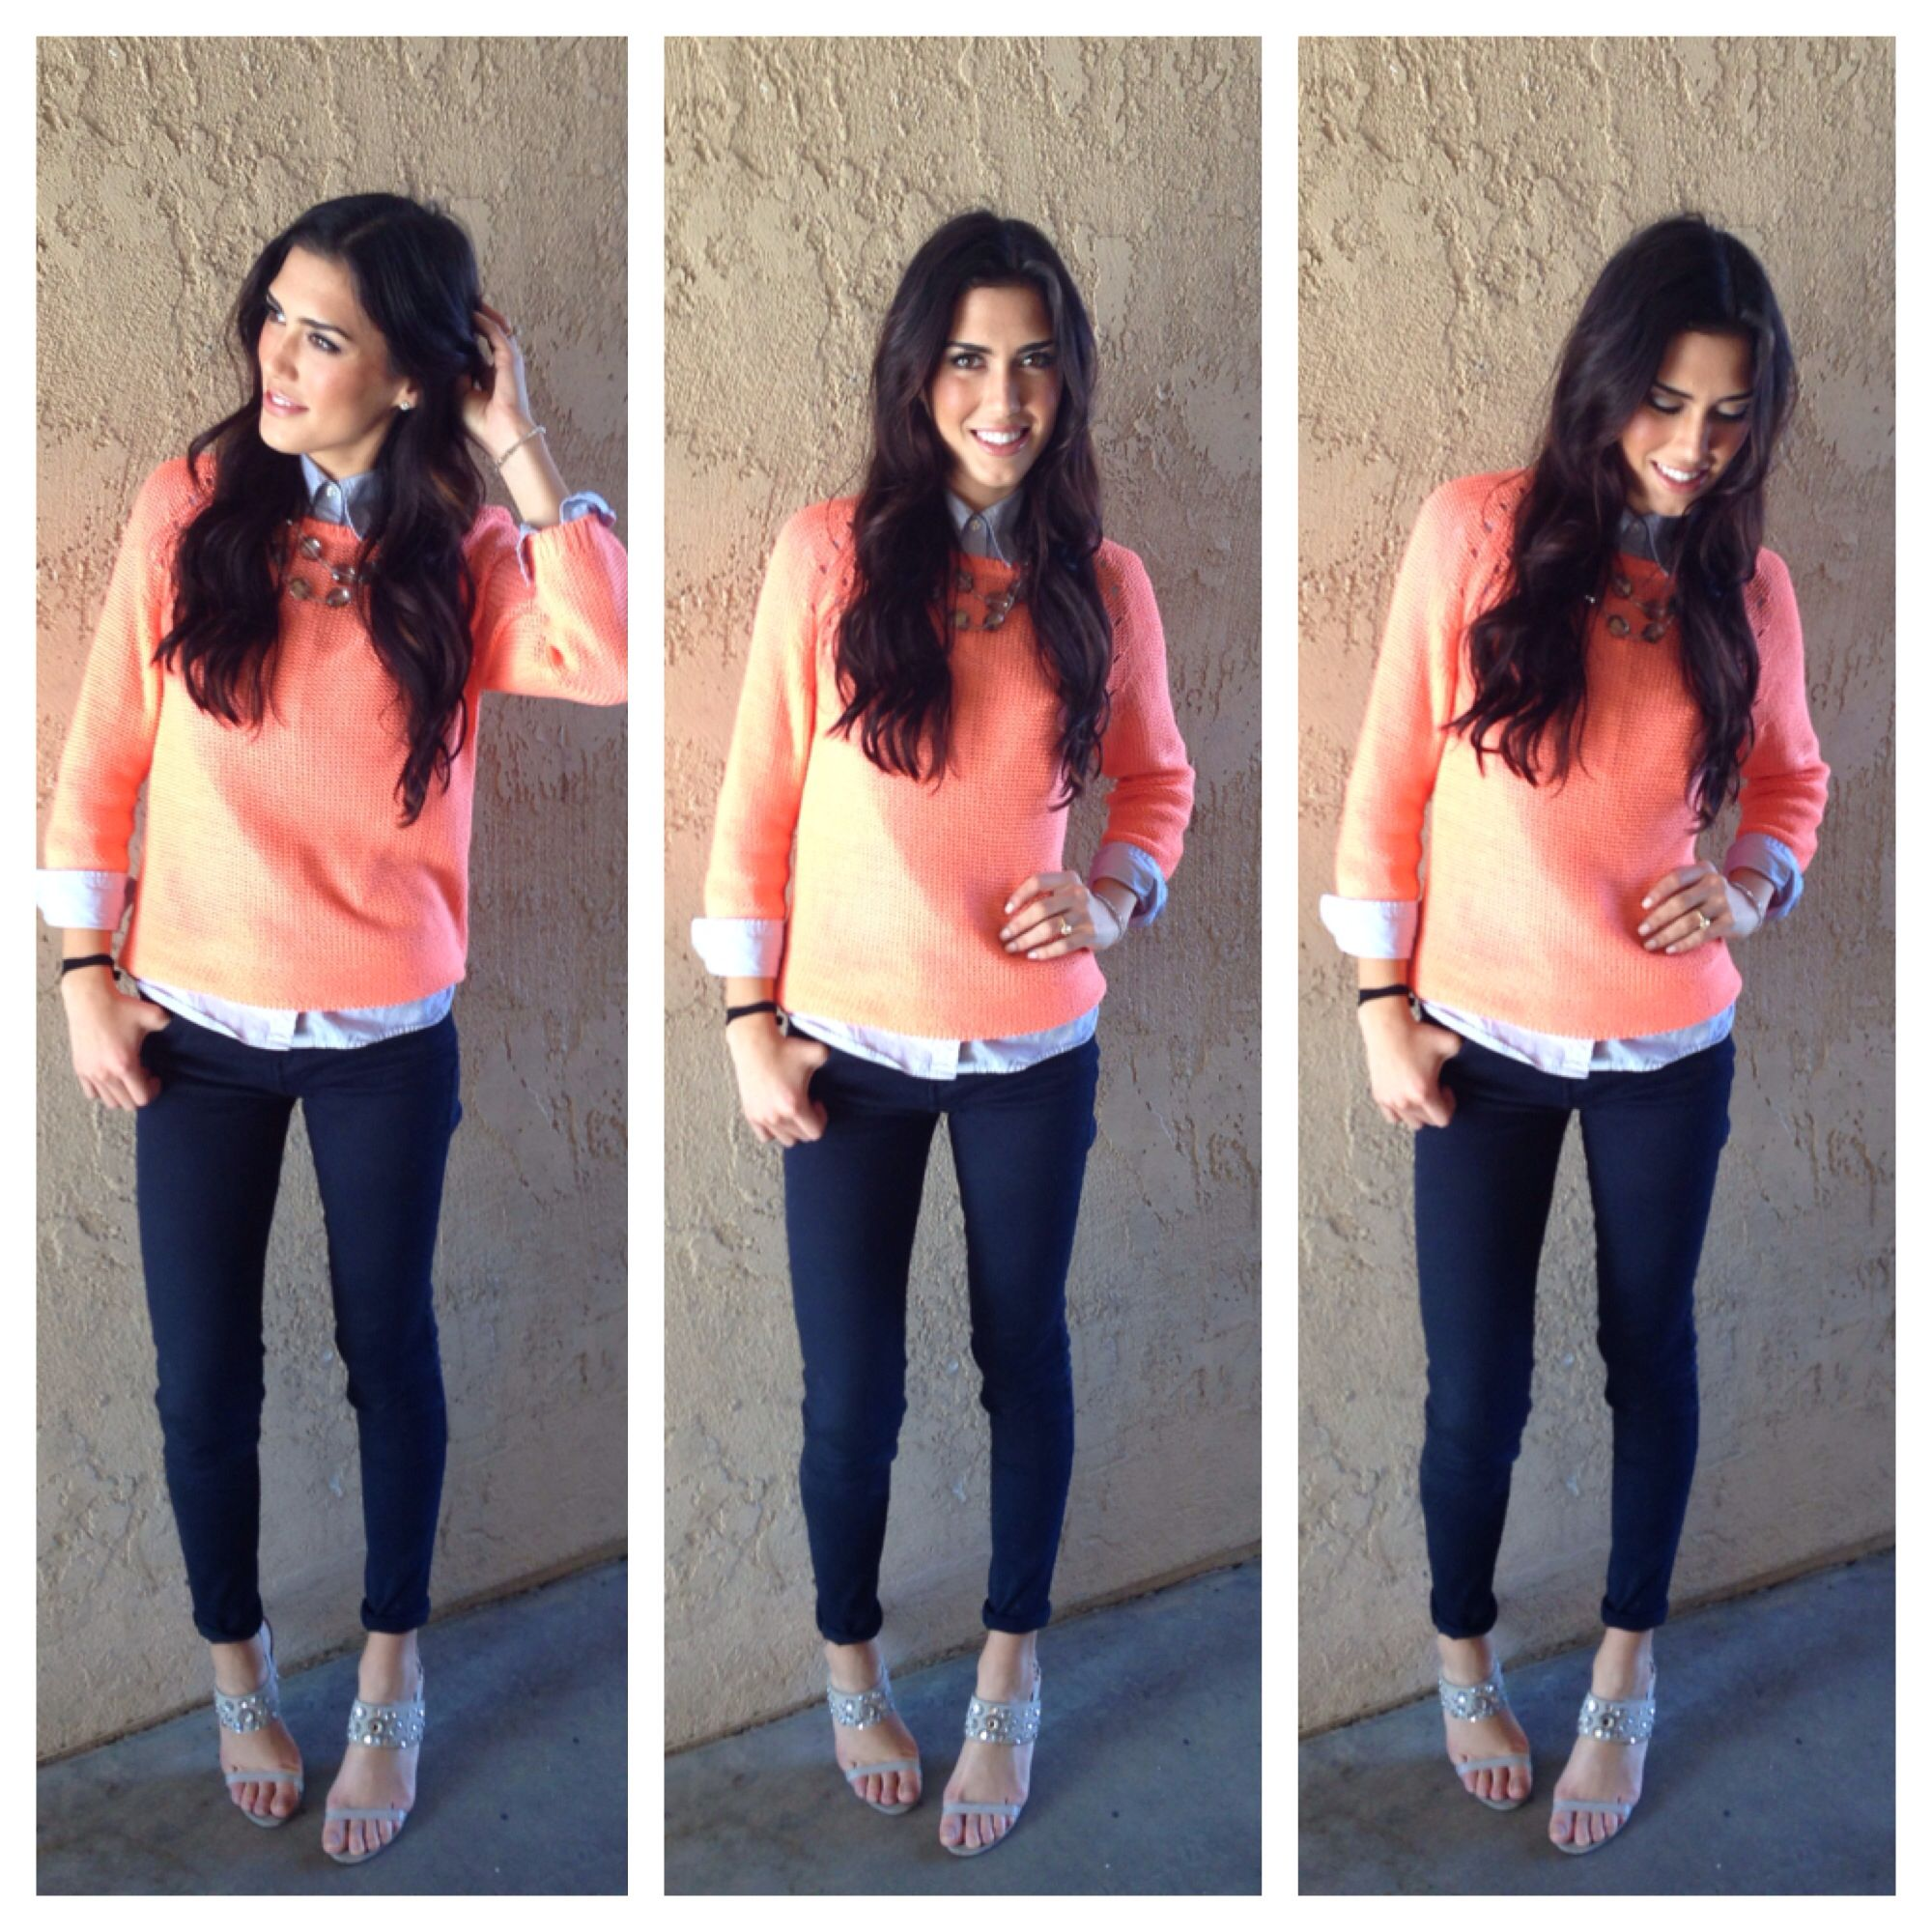 25c60888d32 Salmon color sweater over a dress shirt with navy blue jeans and statement  necklace! Perfect fall outfit!!  Karely s Tips on instagram